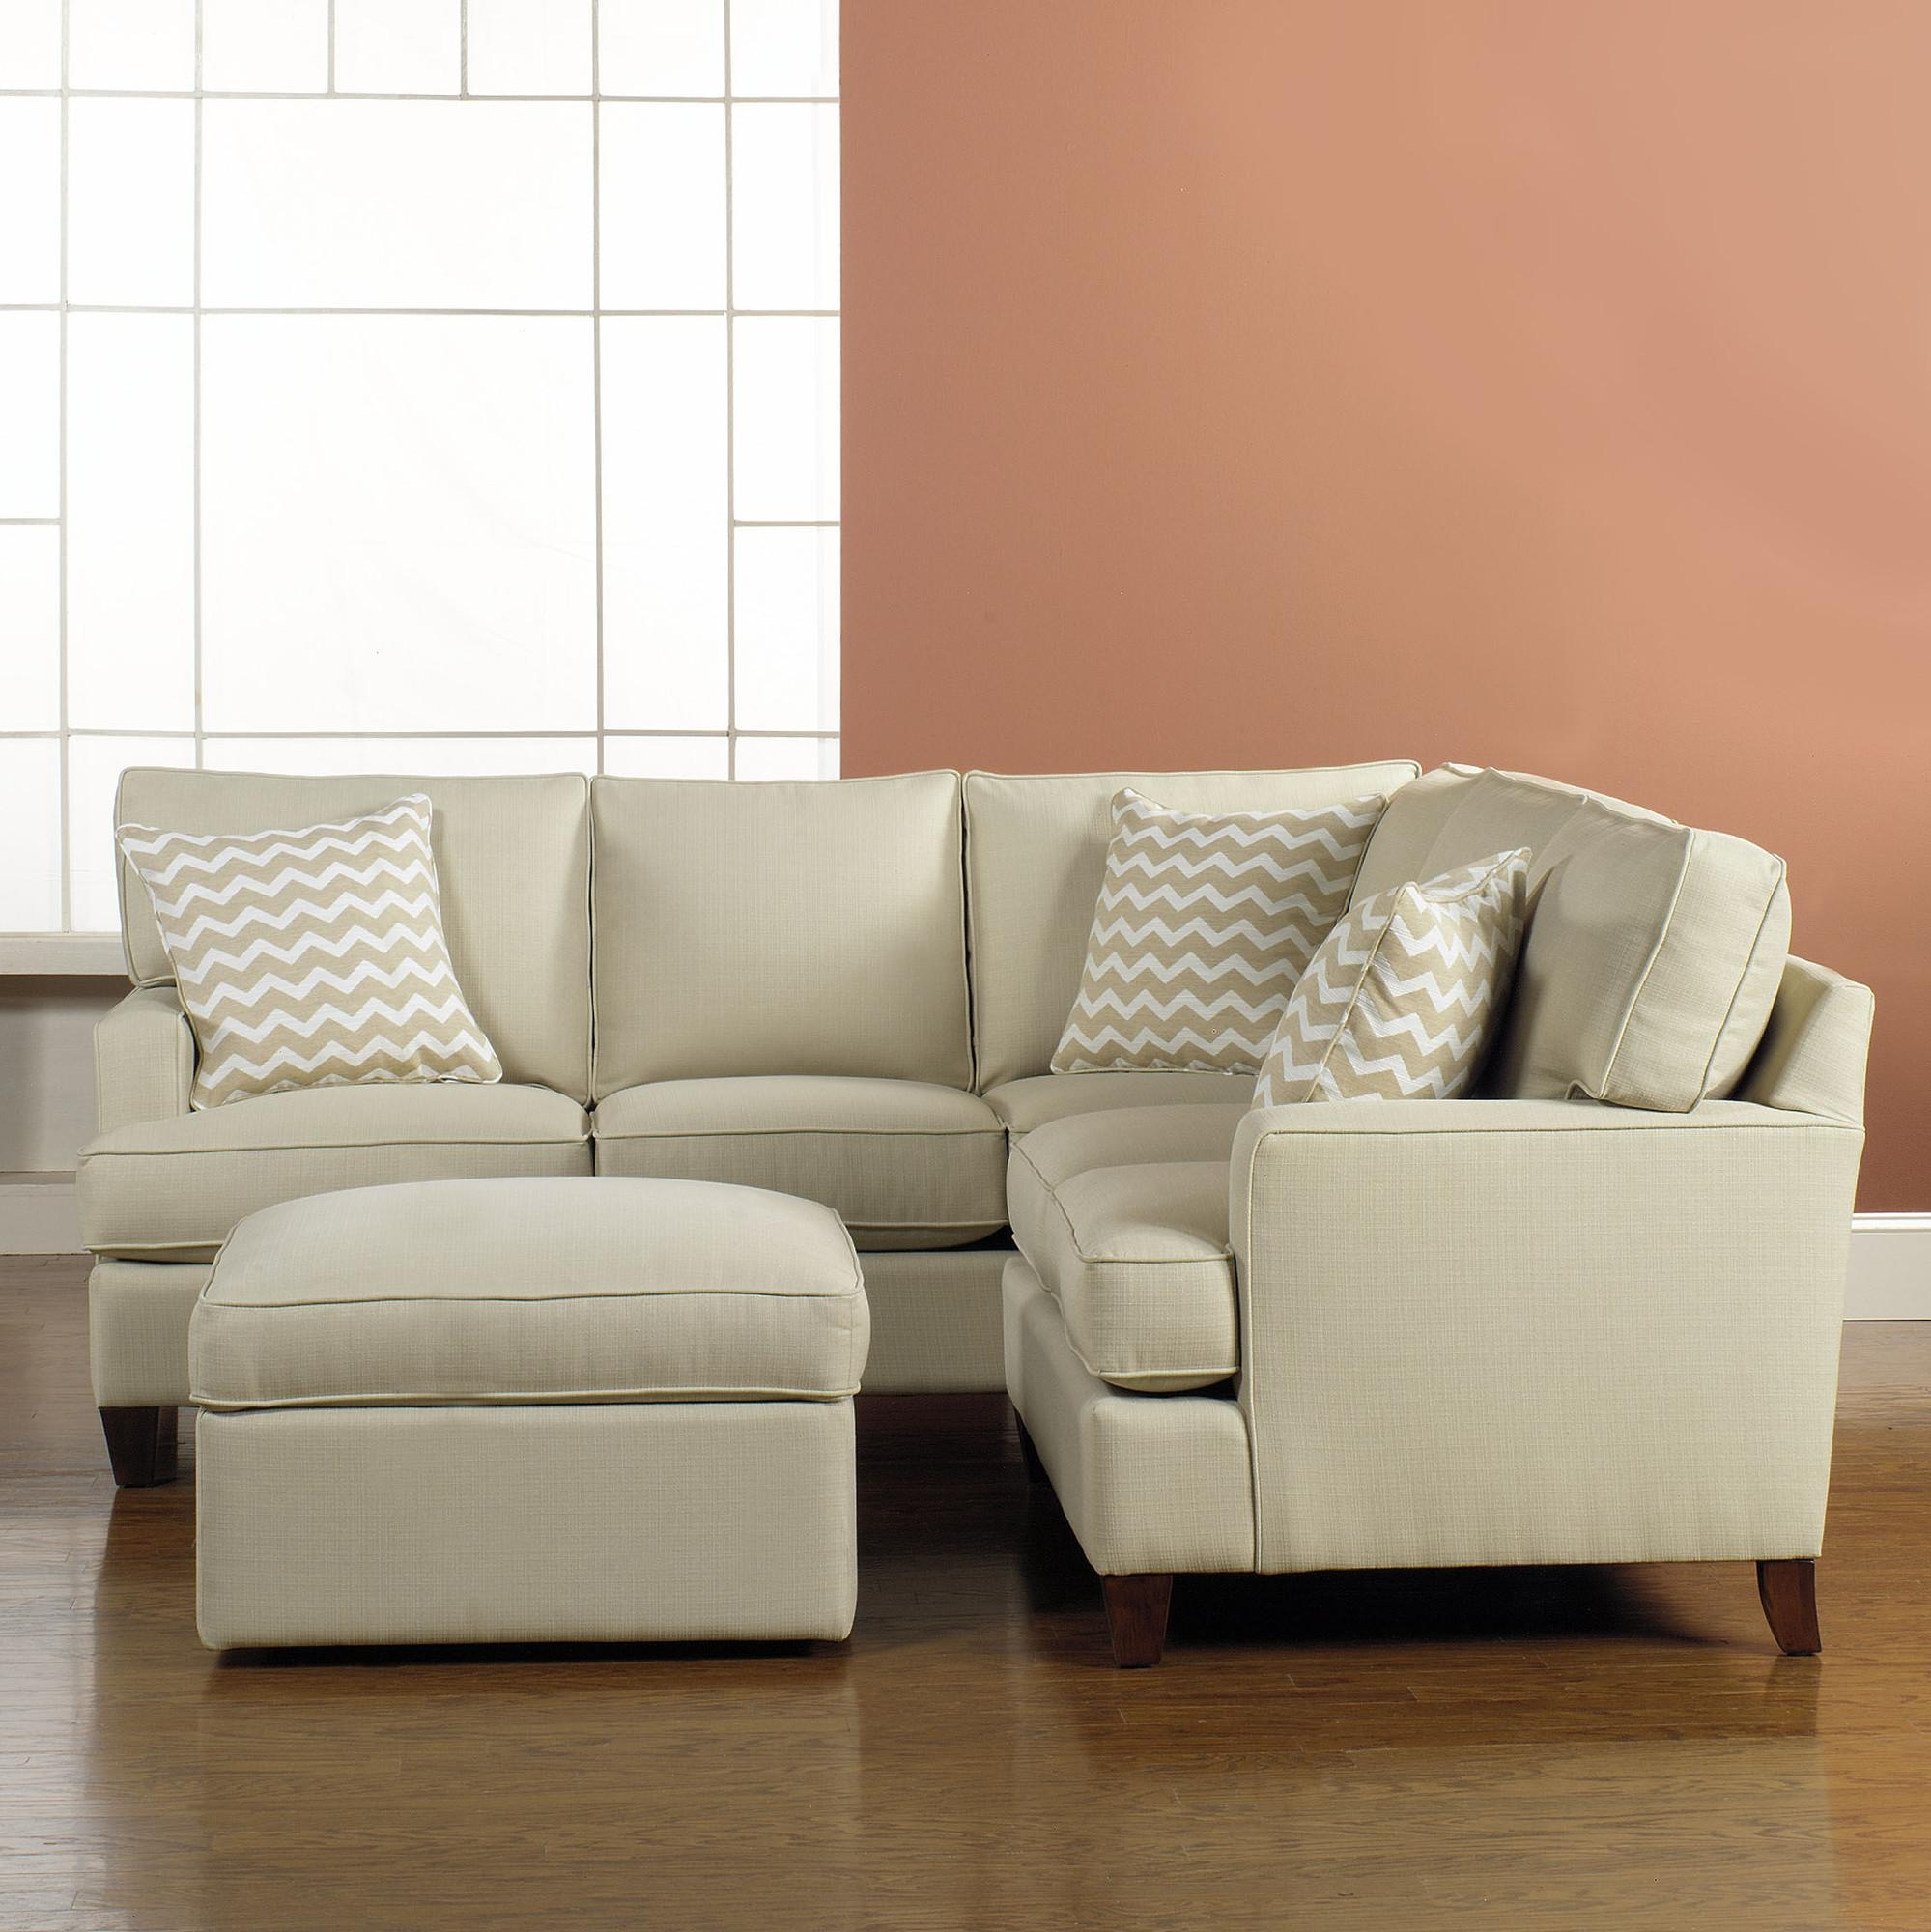 Small Sectional Couch (View 1 of 15)